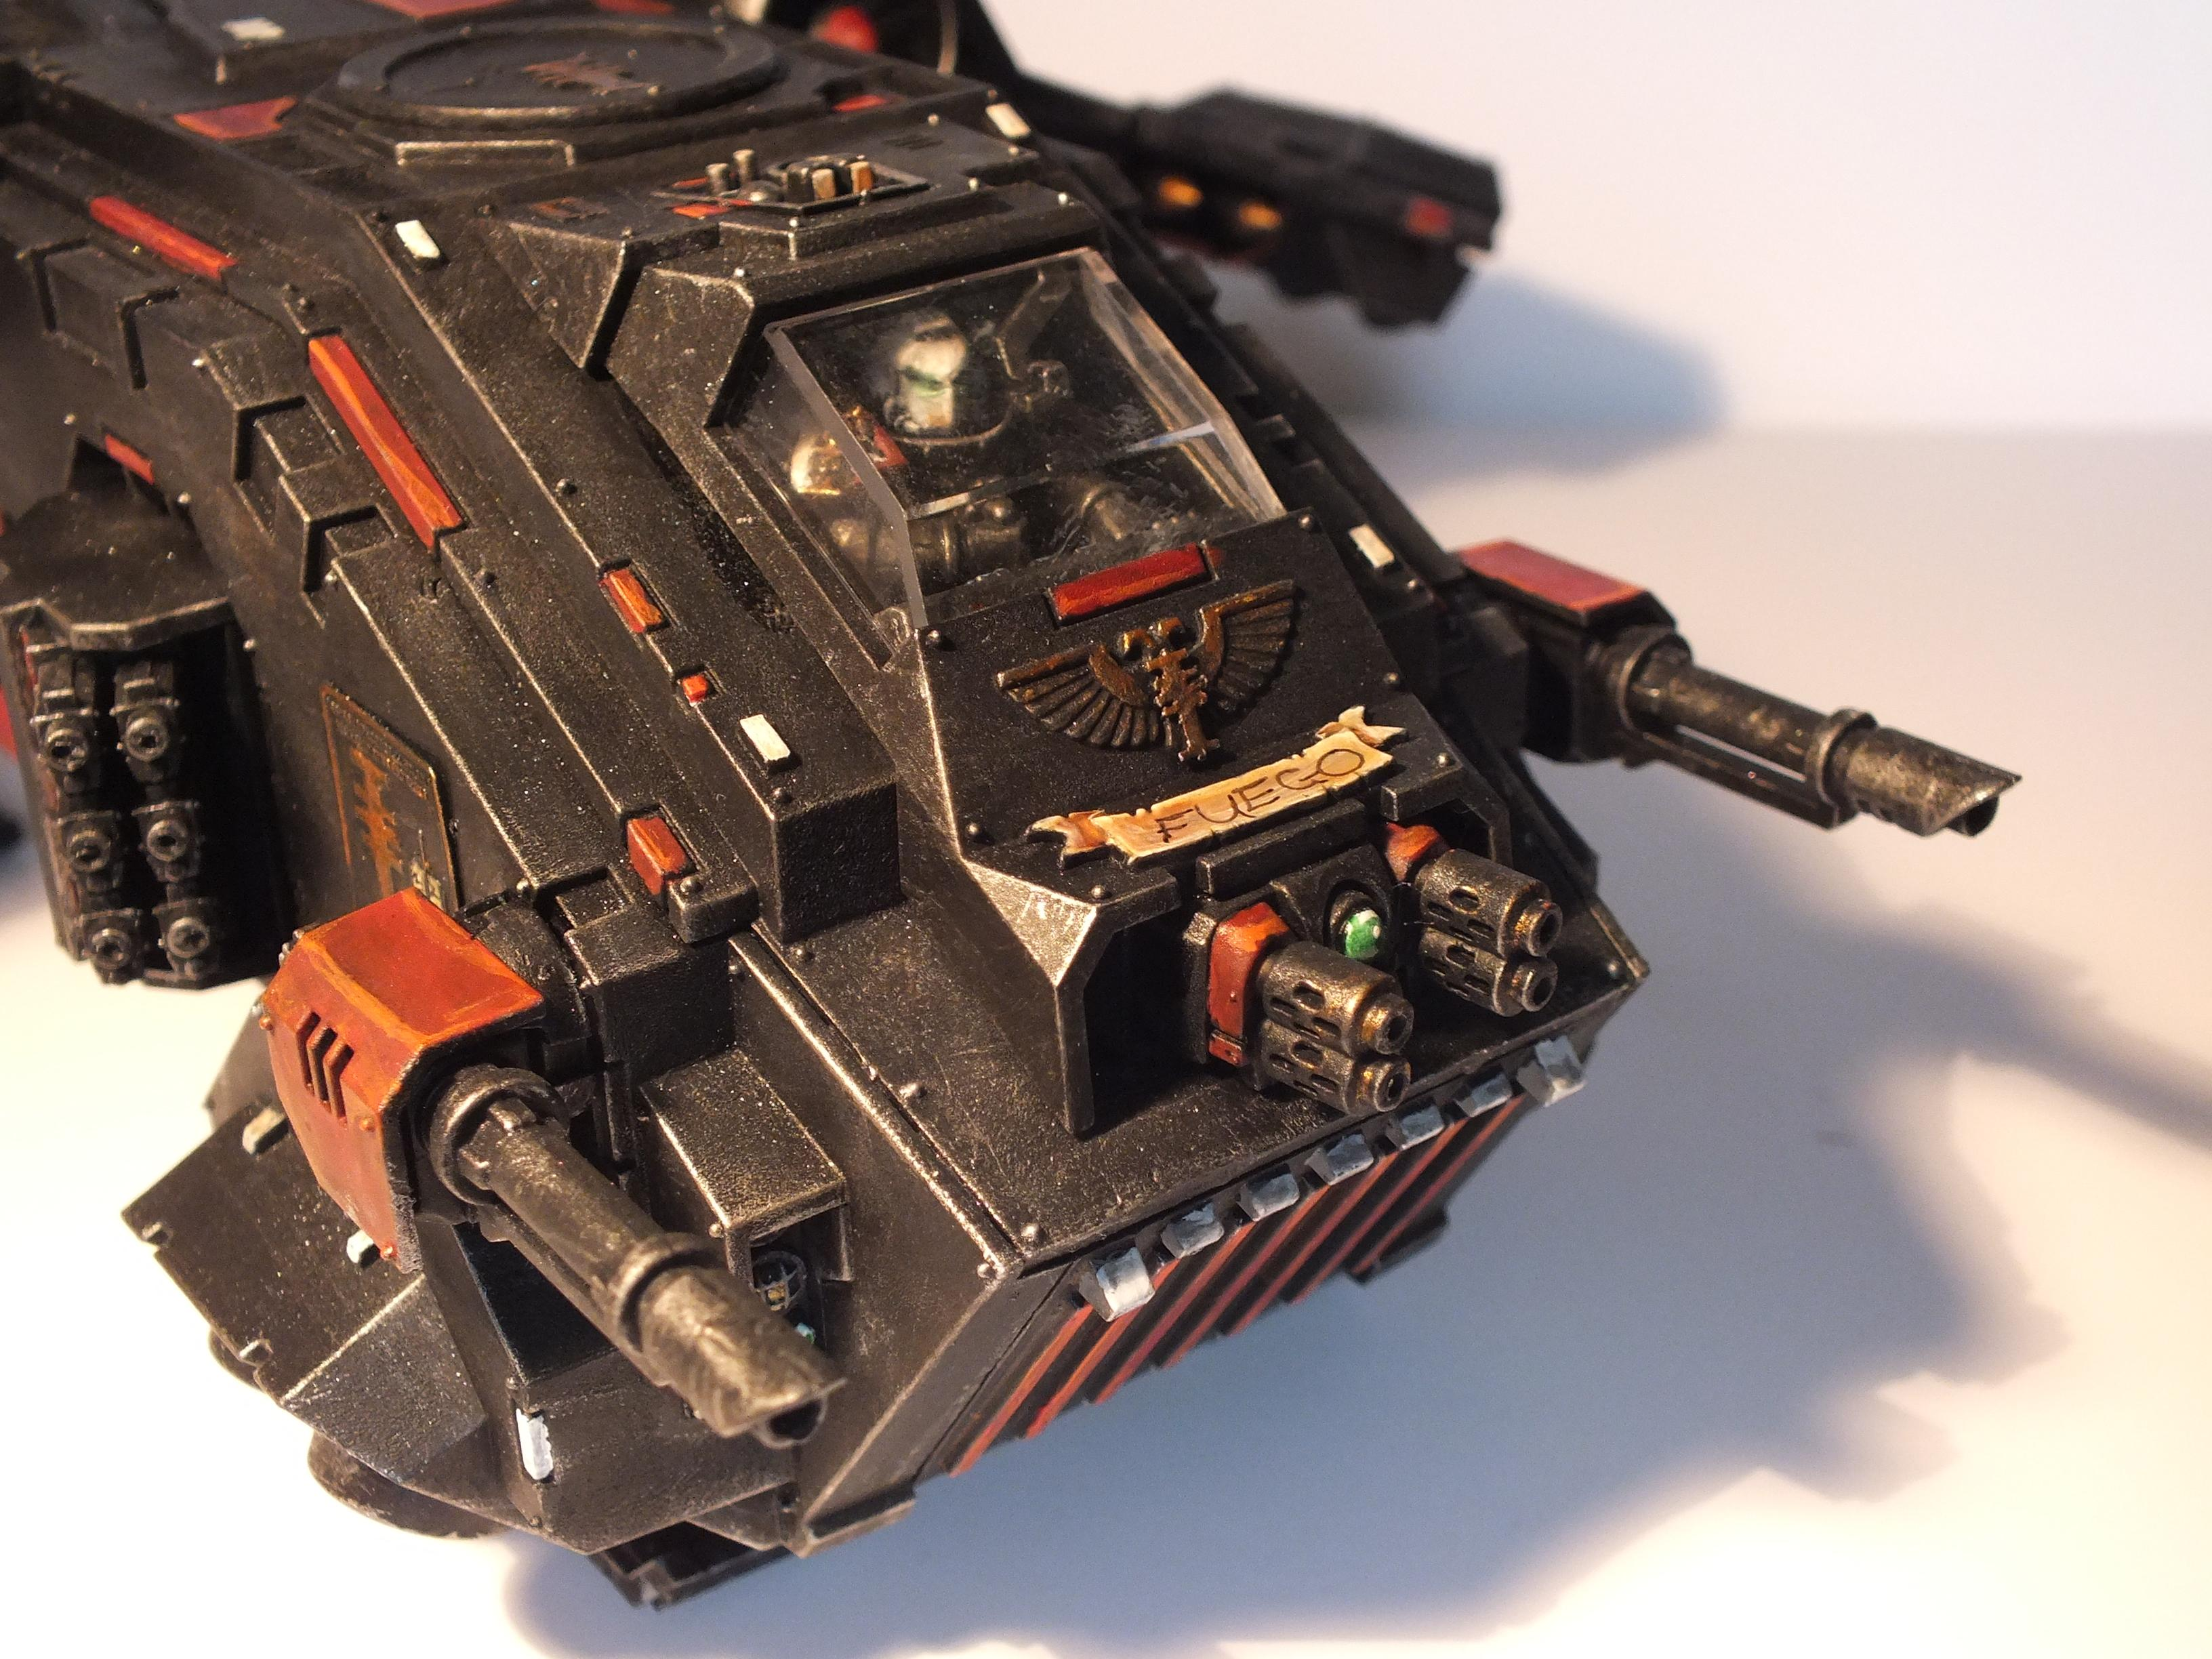 Chapter House, Conversion, Gk, Grey Knights, Storm Raven